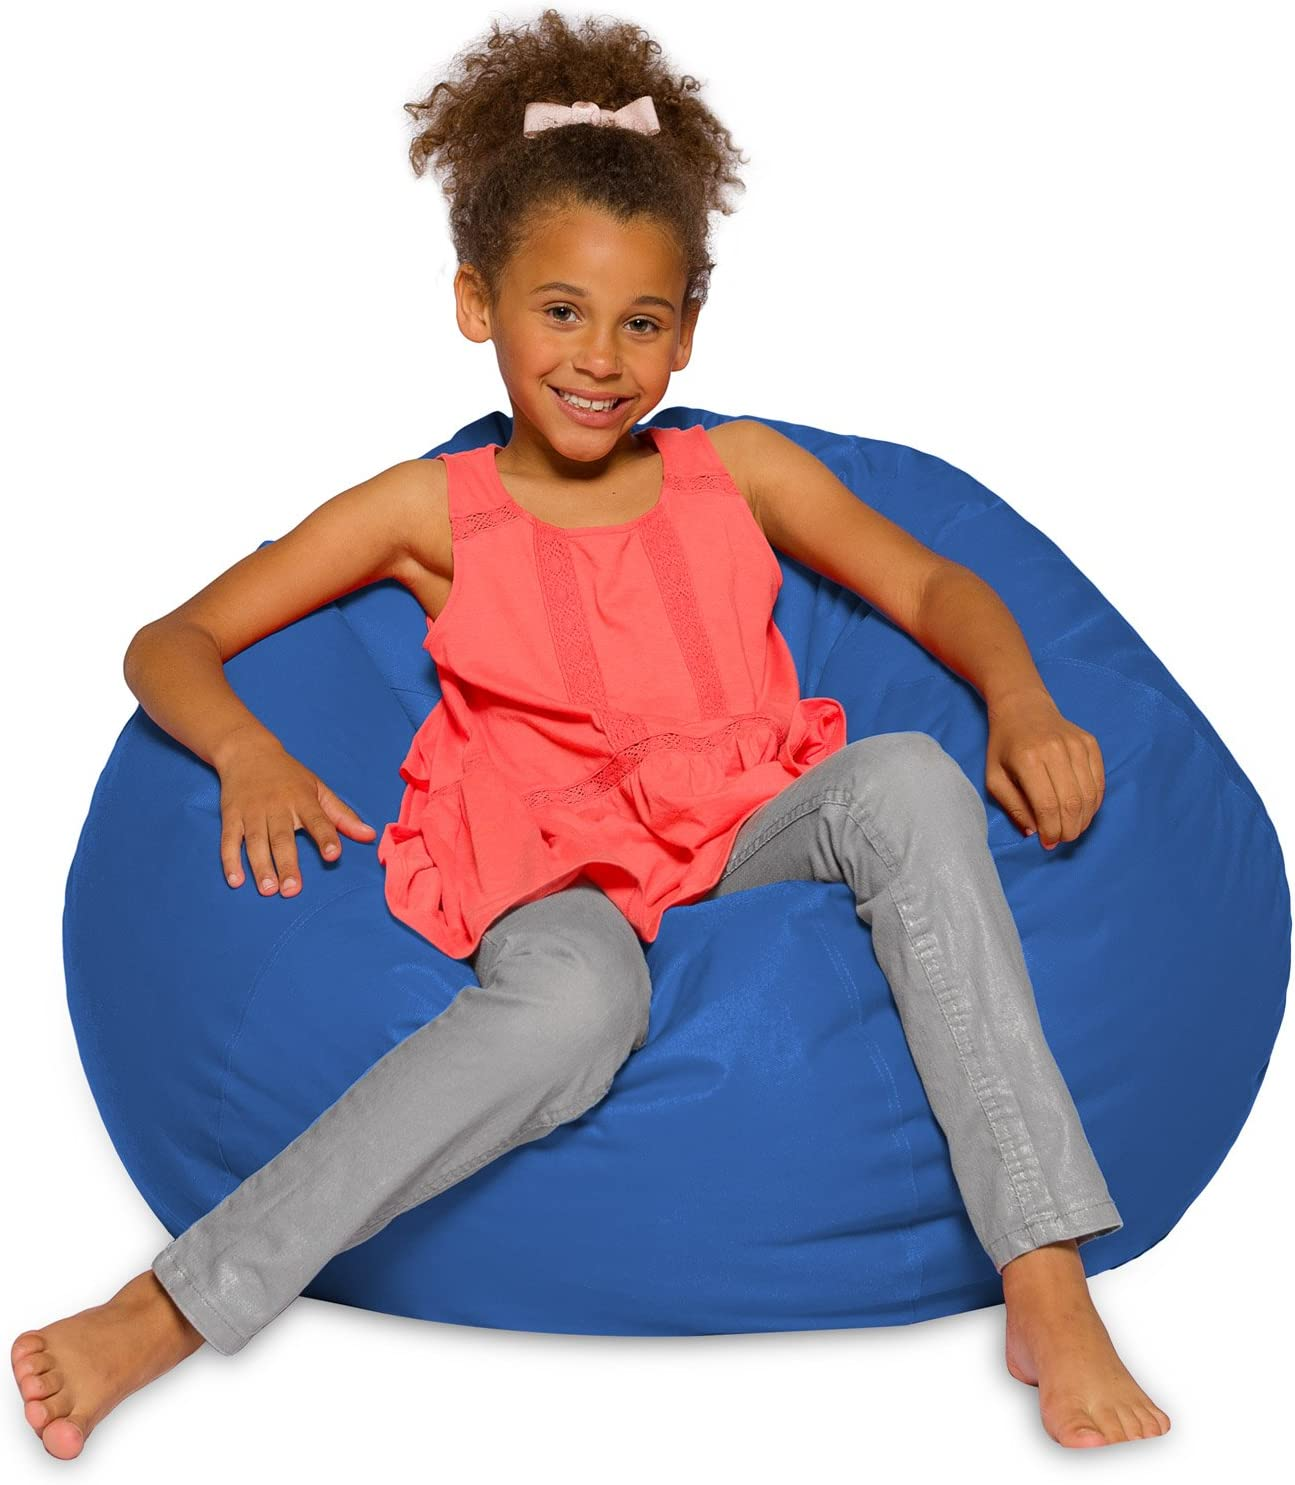 Posh Creations Big Comfy Bean Bag Posh Large Beanbag Chairs with Removable Cover for Kids, Teens and Adults Polyester Cloth Puff Sack Lounger Furniture for All Ages, 27in, Solid Royal Blue